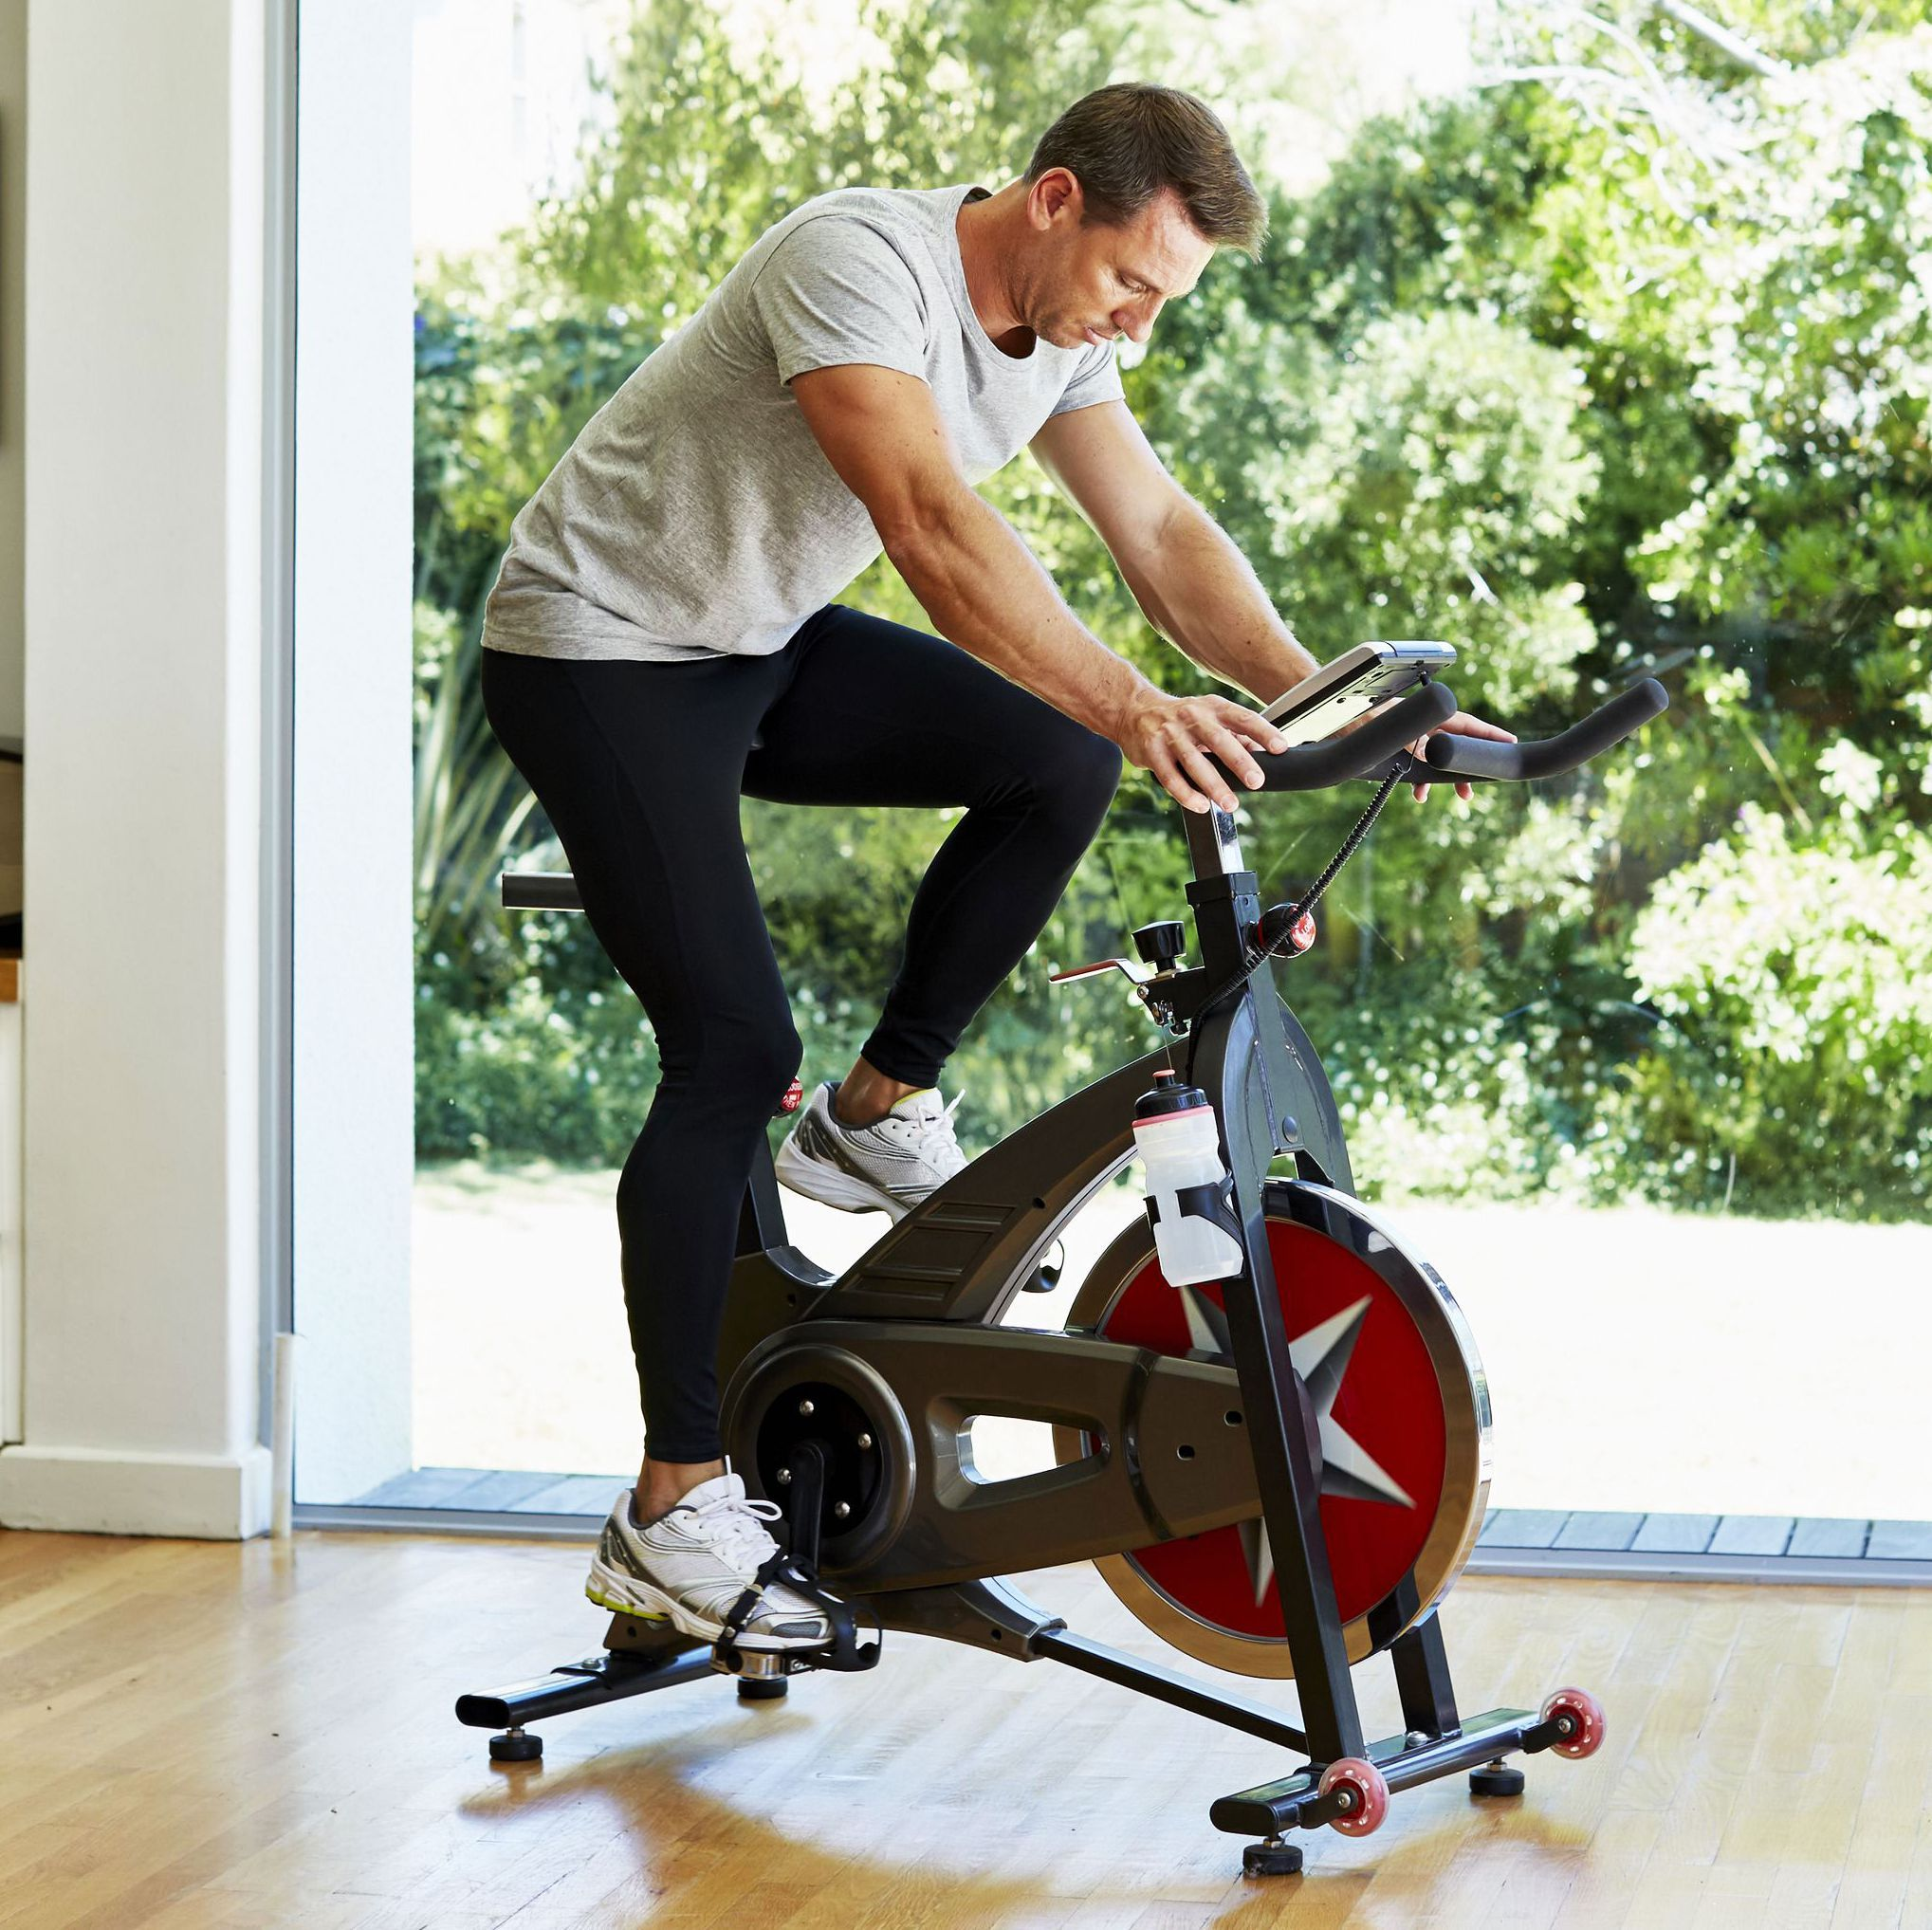 Best exercise bikes to spin in your home gym